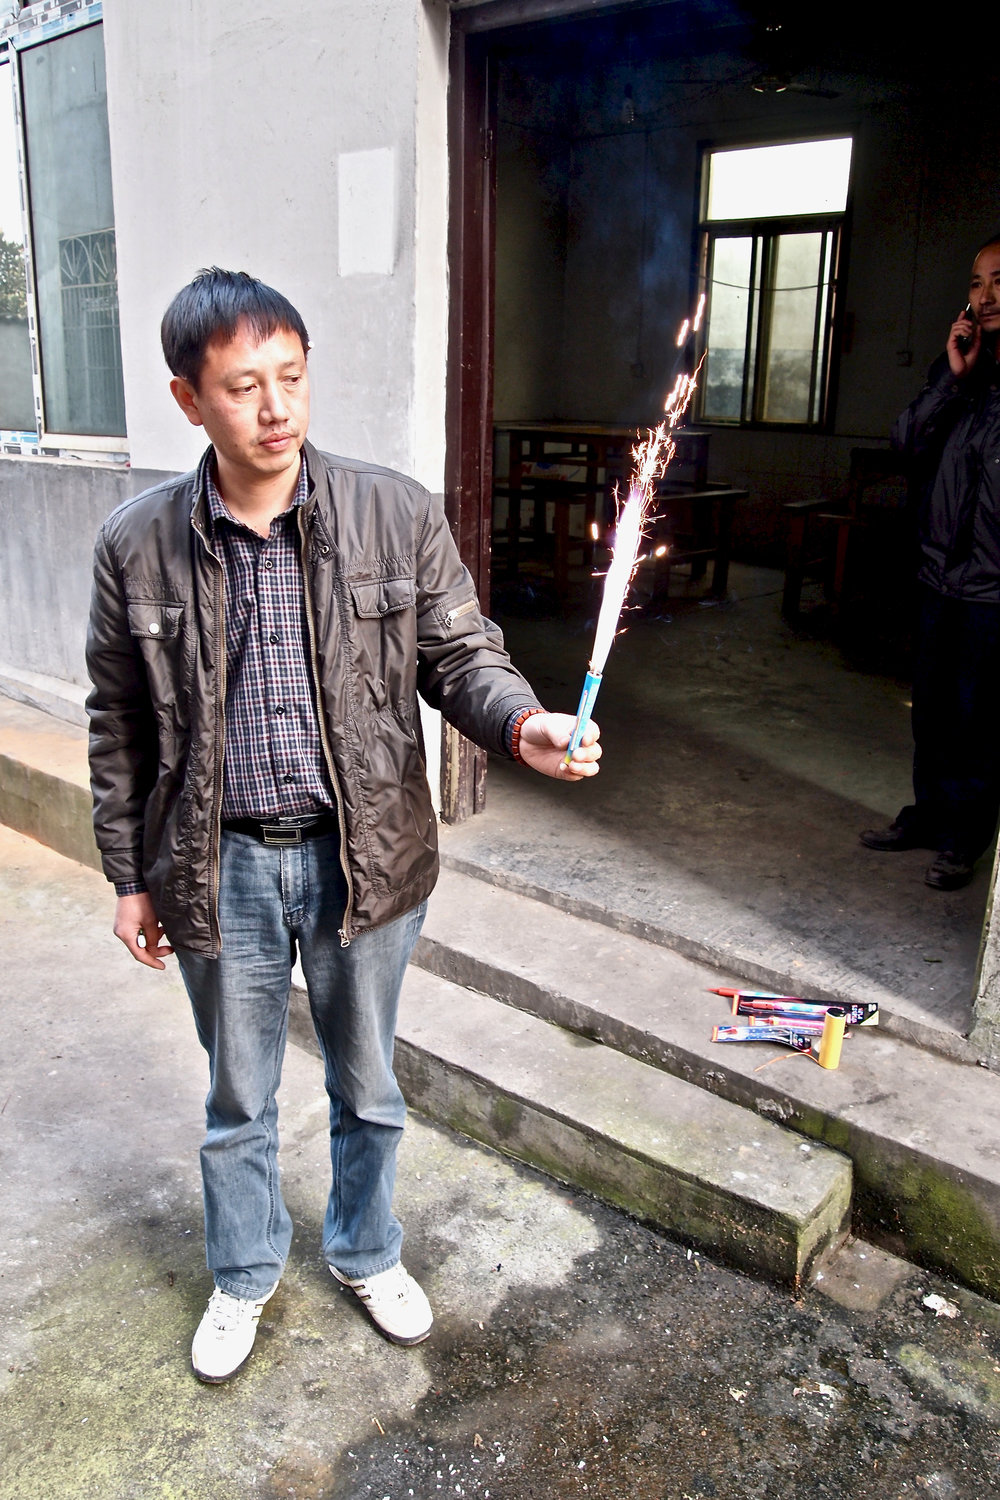 Bo Yuefei, managing director of Dream Fireworks in Liuyang, China. Photo: (C) Remko Tanis